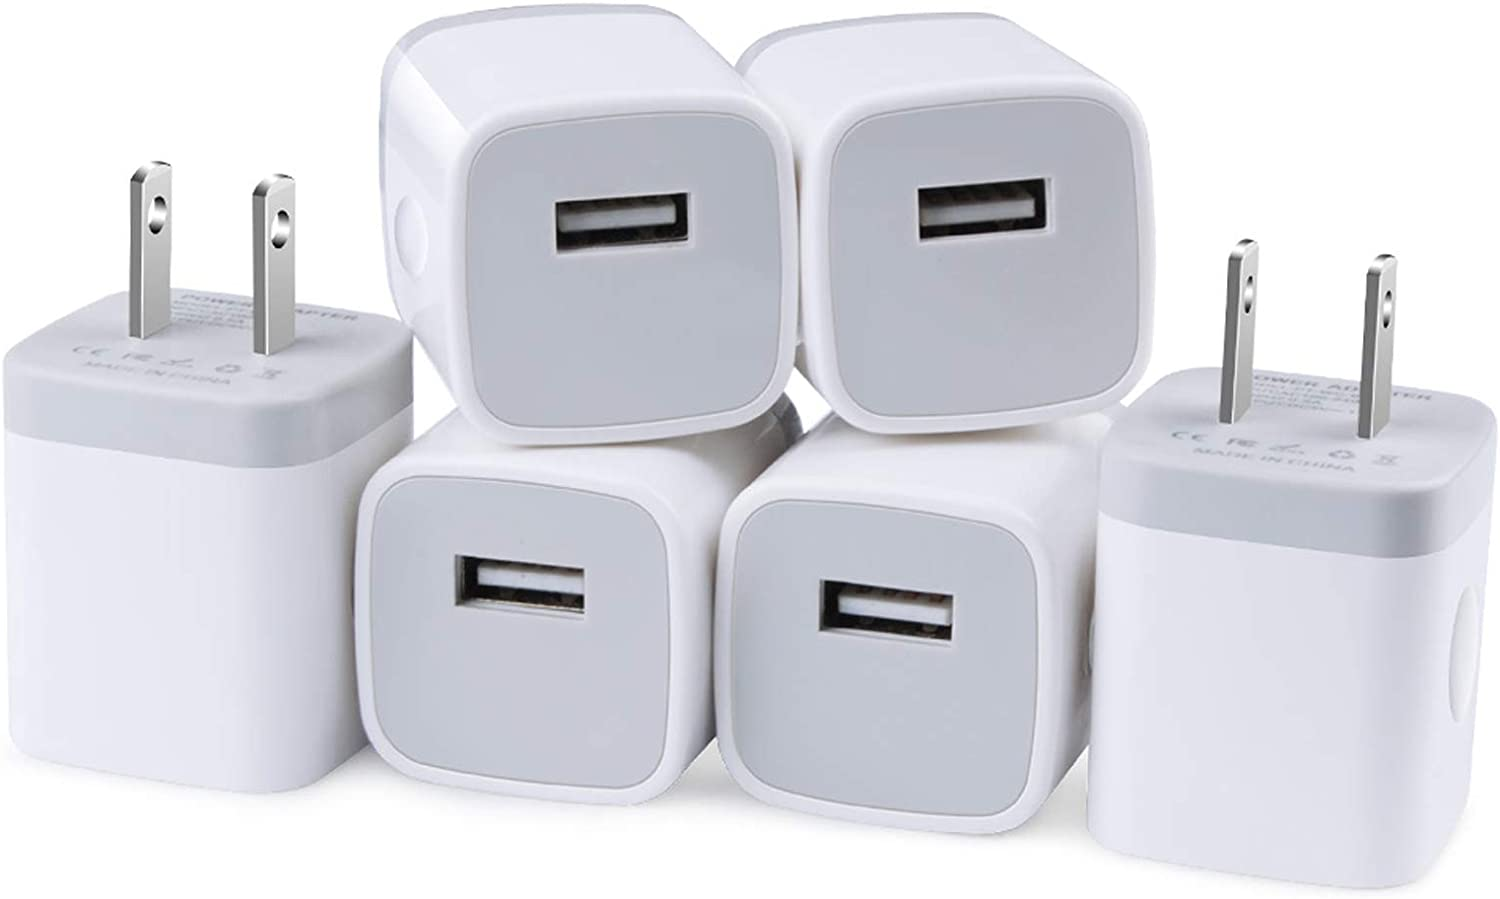 USB Wall Charger, 6 Pack 1A/5V One-Port USB Cube Power Adapter Charger Wall Plug Charging Block for iPhone 12 11 Pro Max, XR/Xs/X, 8/7/6/6S Plus, iPad, Samsung Galaxy, HTC, LG, P40 Pro+, Pixel, Moto